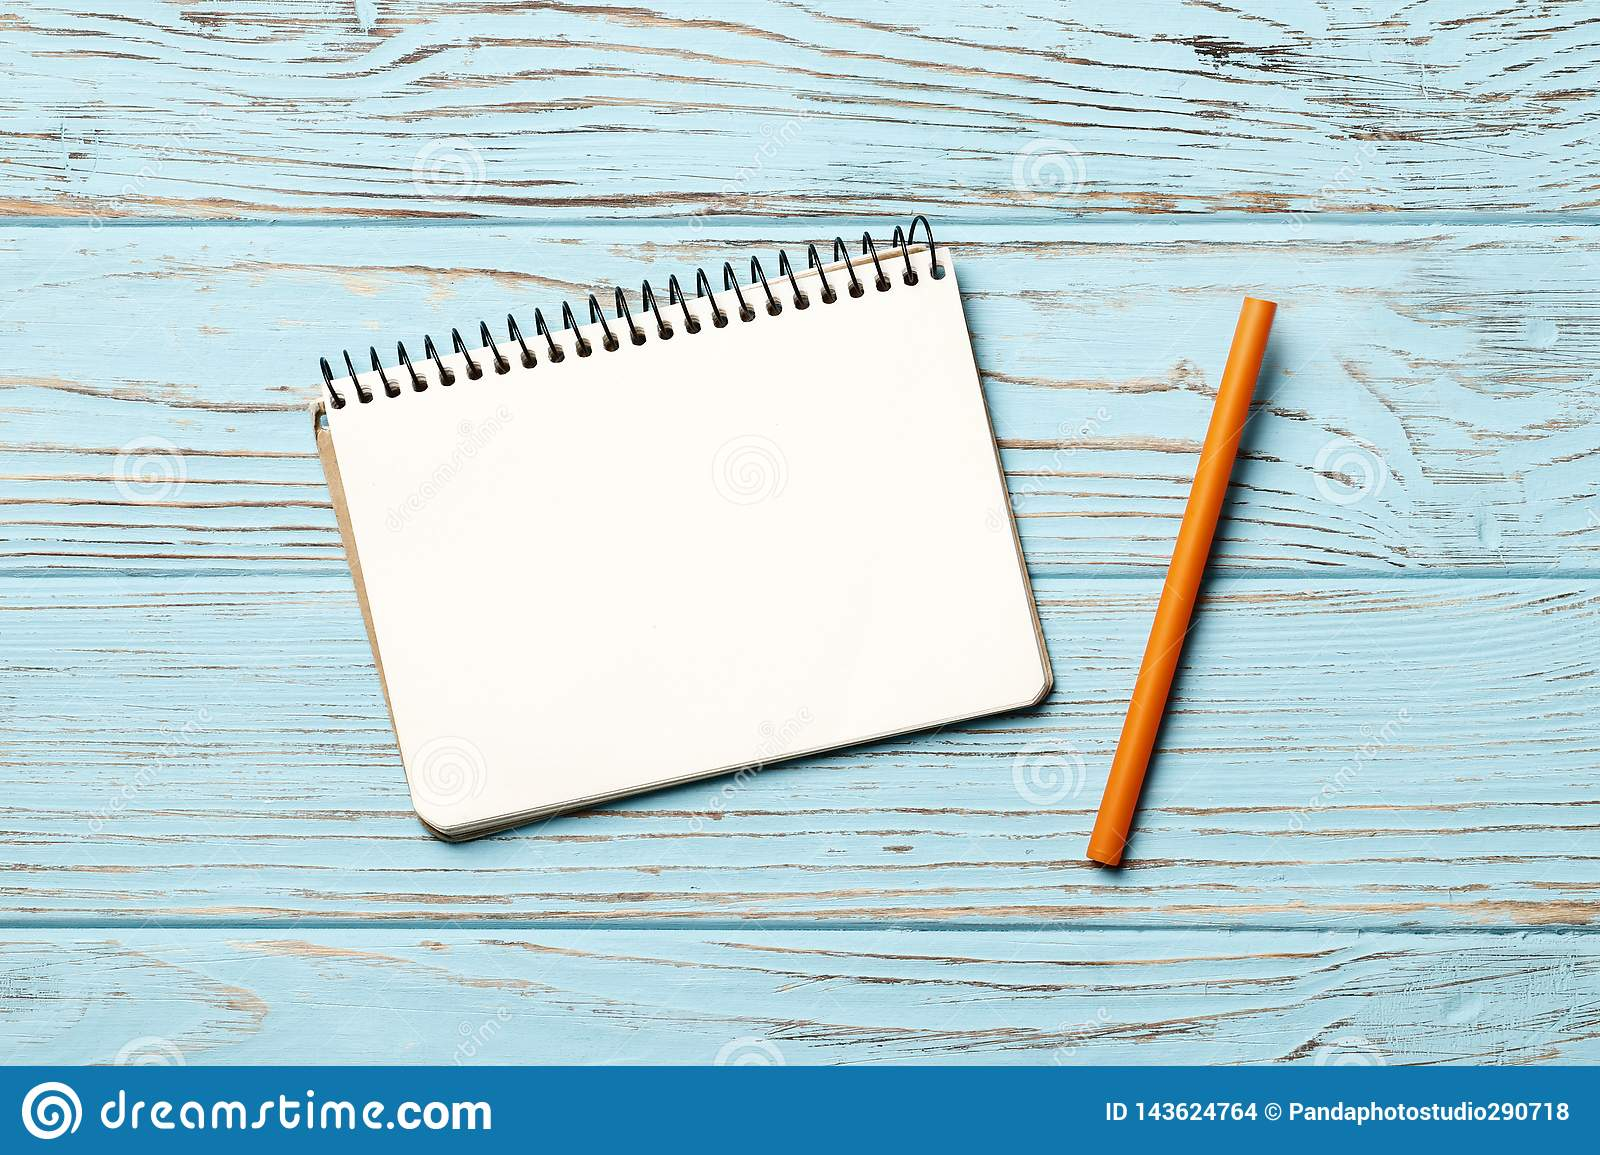 paper notebook with pen on blue wooden background